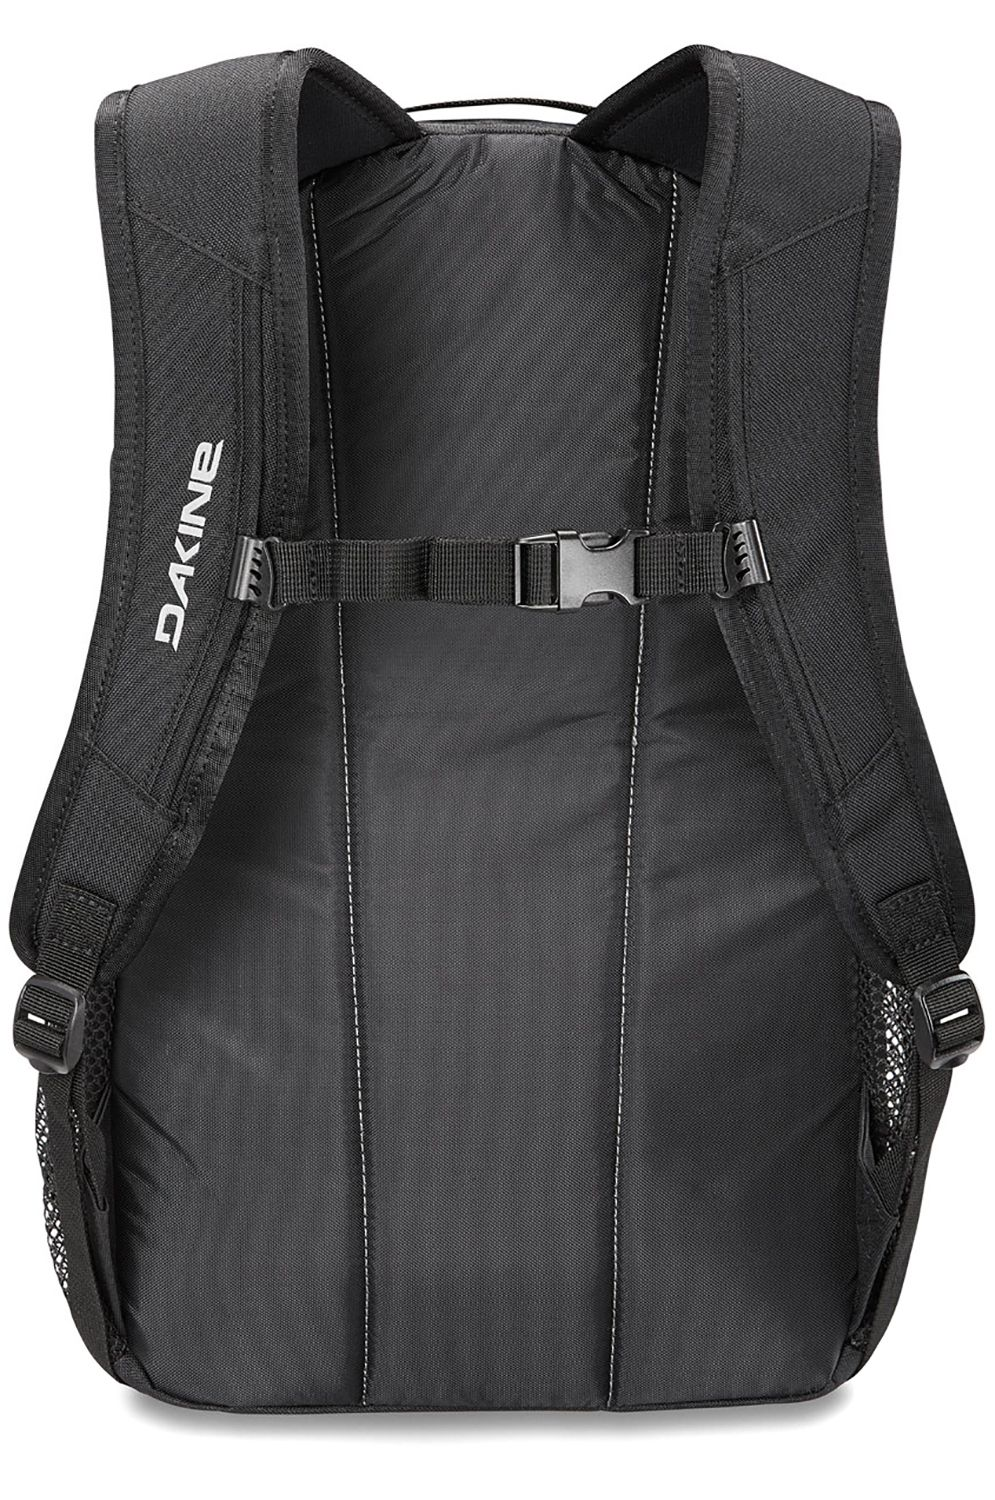 8c9296f78d249 Mochila Dakine MISSION MINI 18L Black Mochila Dakine MISSION MINI 18L Black